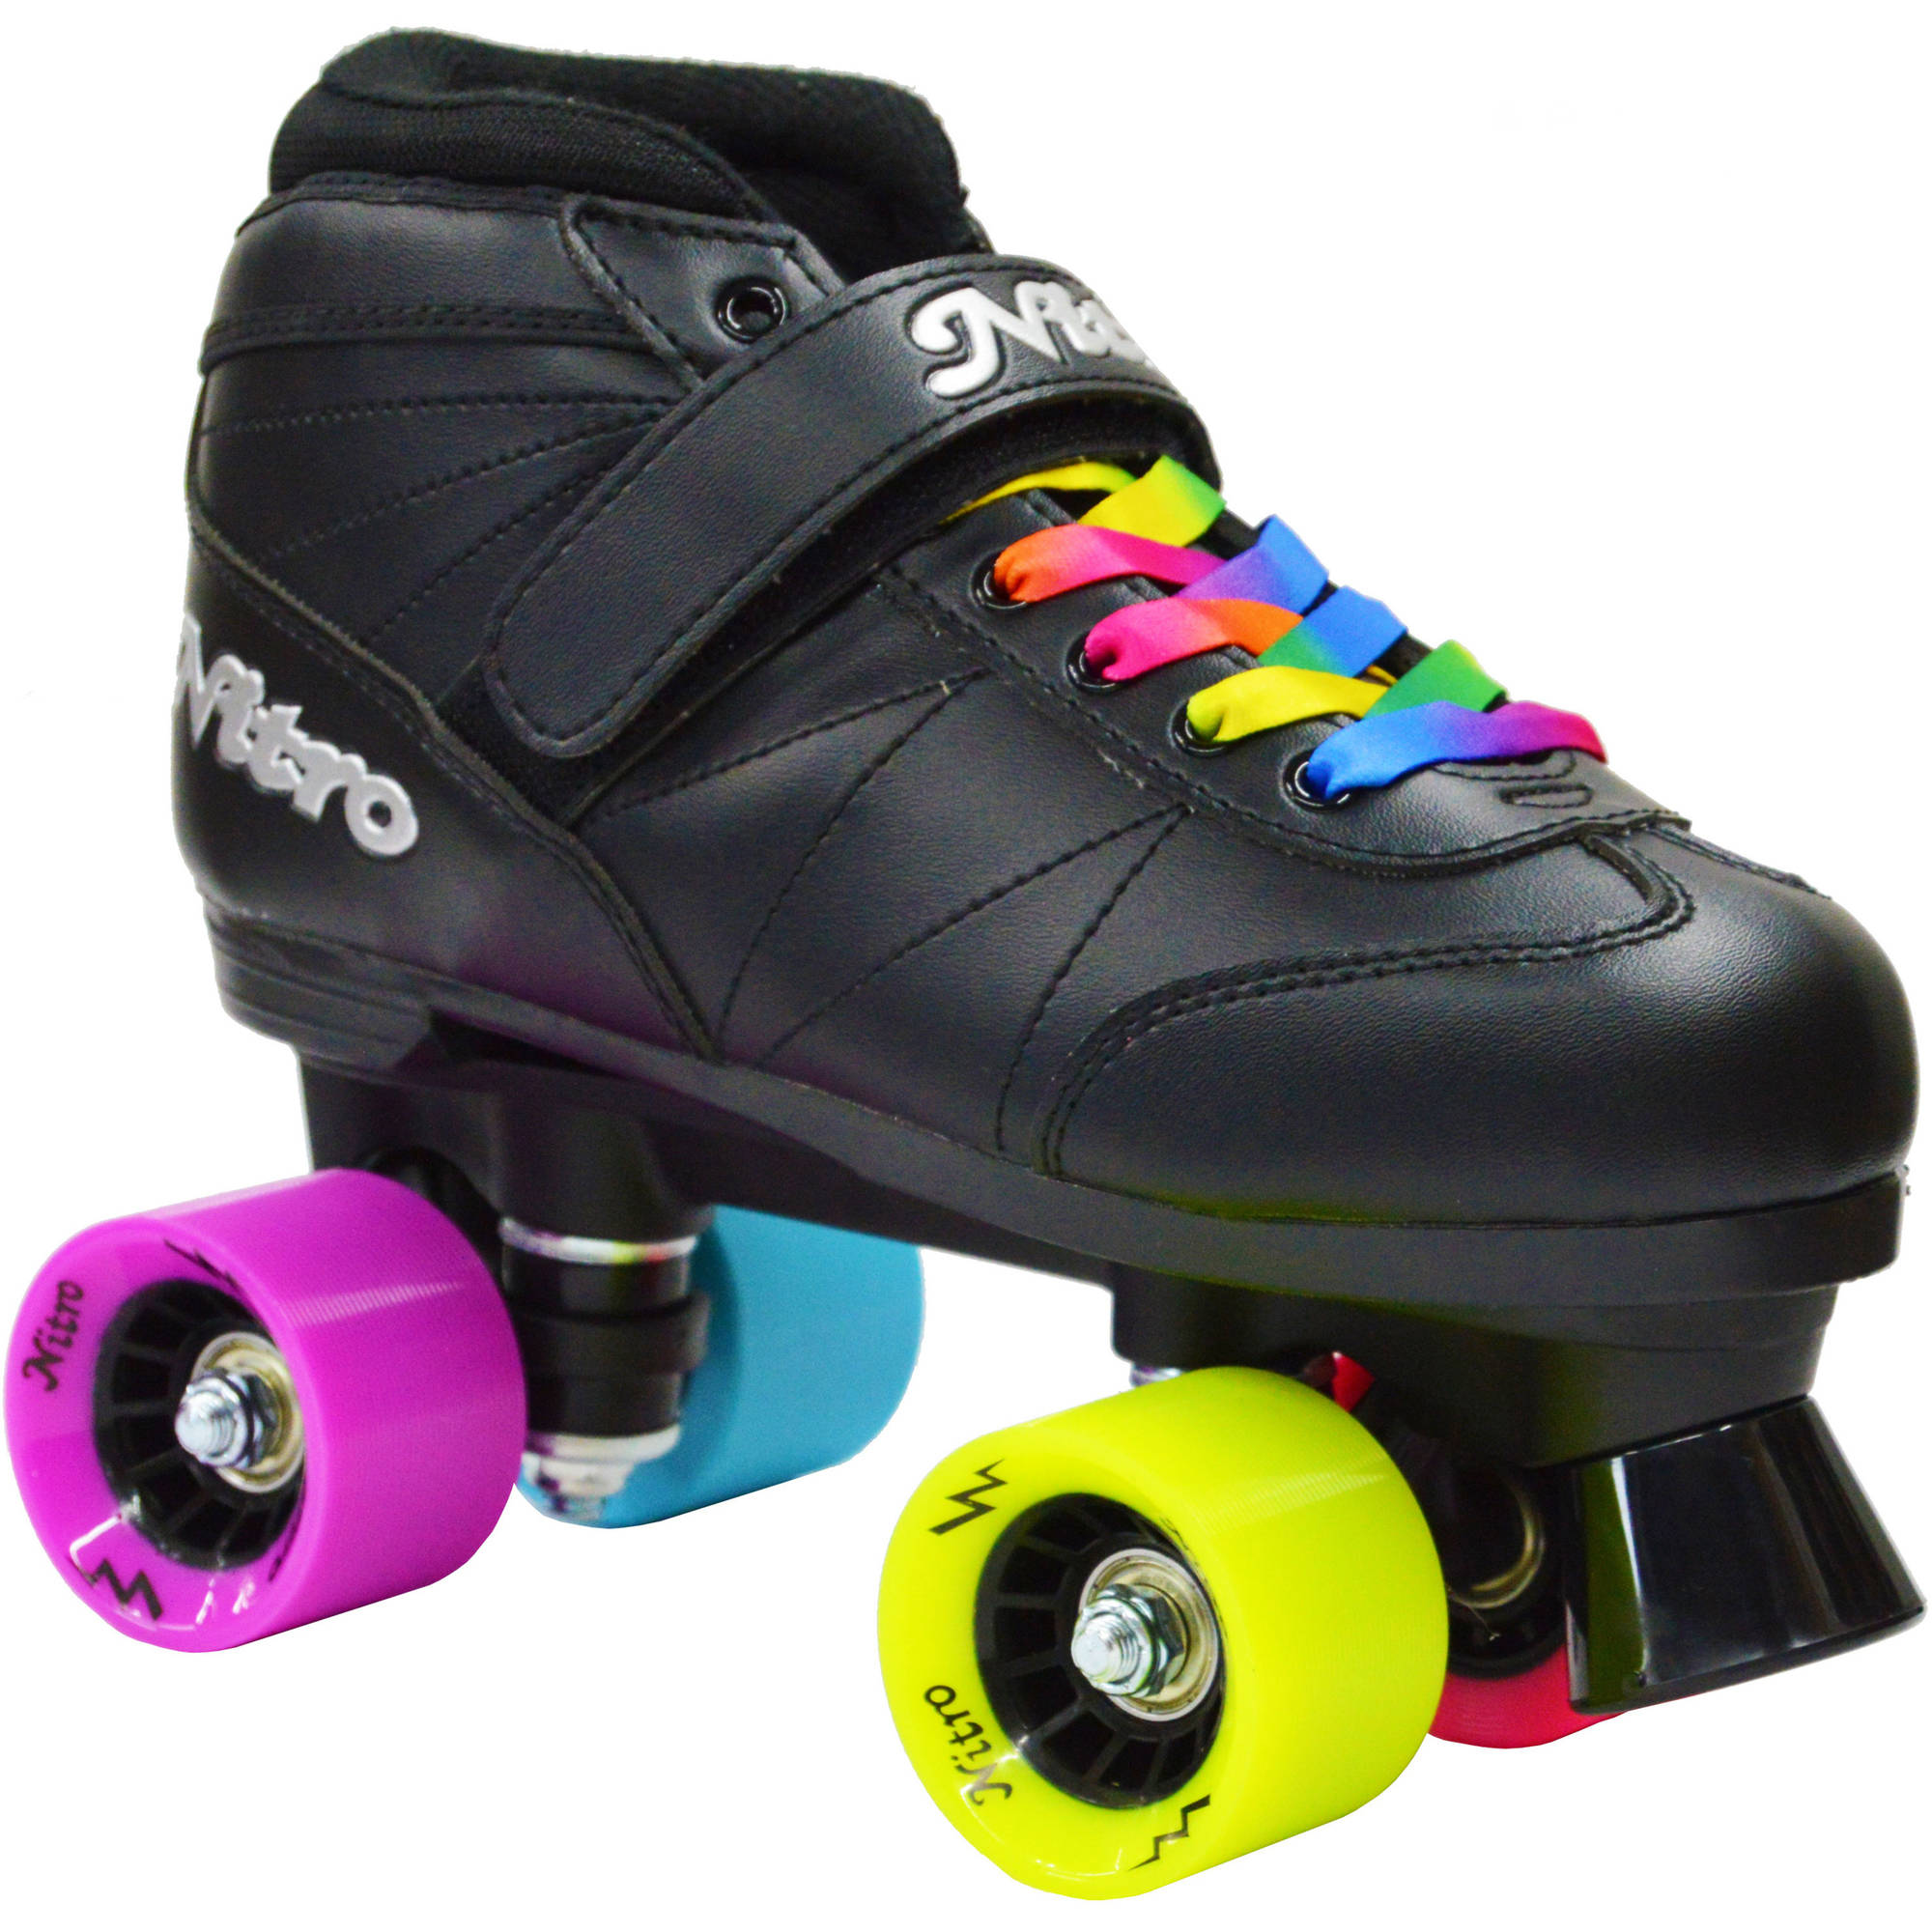 Epic Skates Rainbow Nitro Quad Speed Skates by Epic Skates